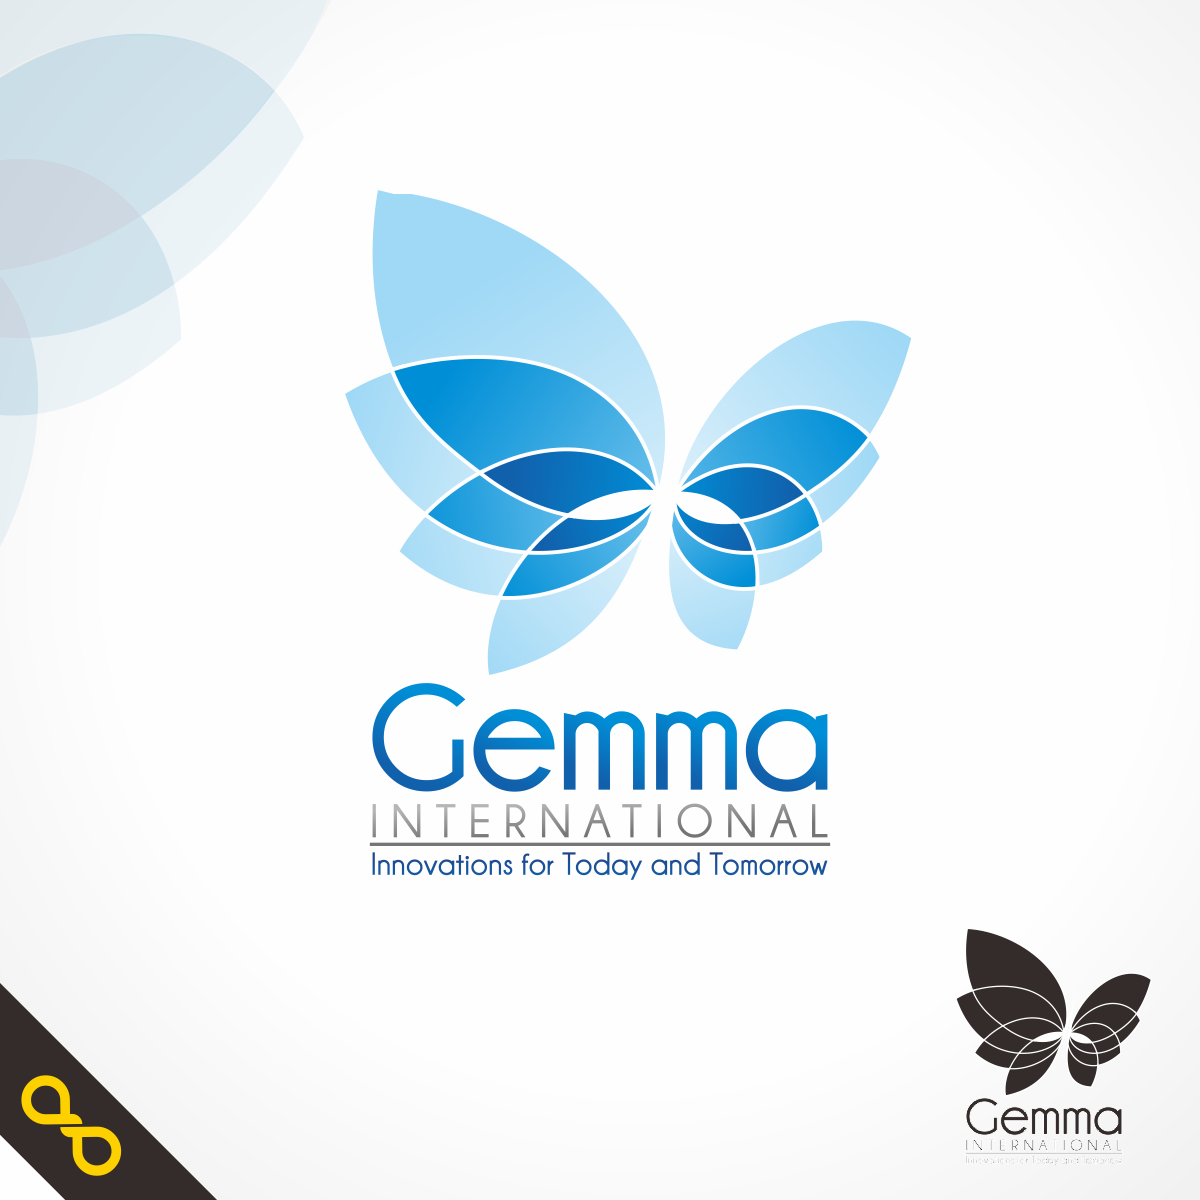 Logo Design by PJD - Entry No. 16 in the Logo Design Contest Artistic Logo Design for Gemma International.